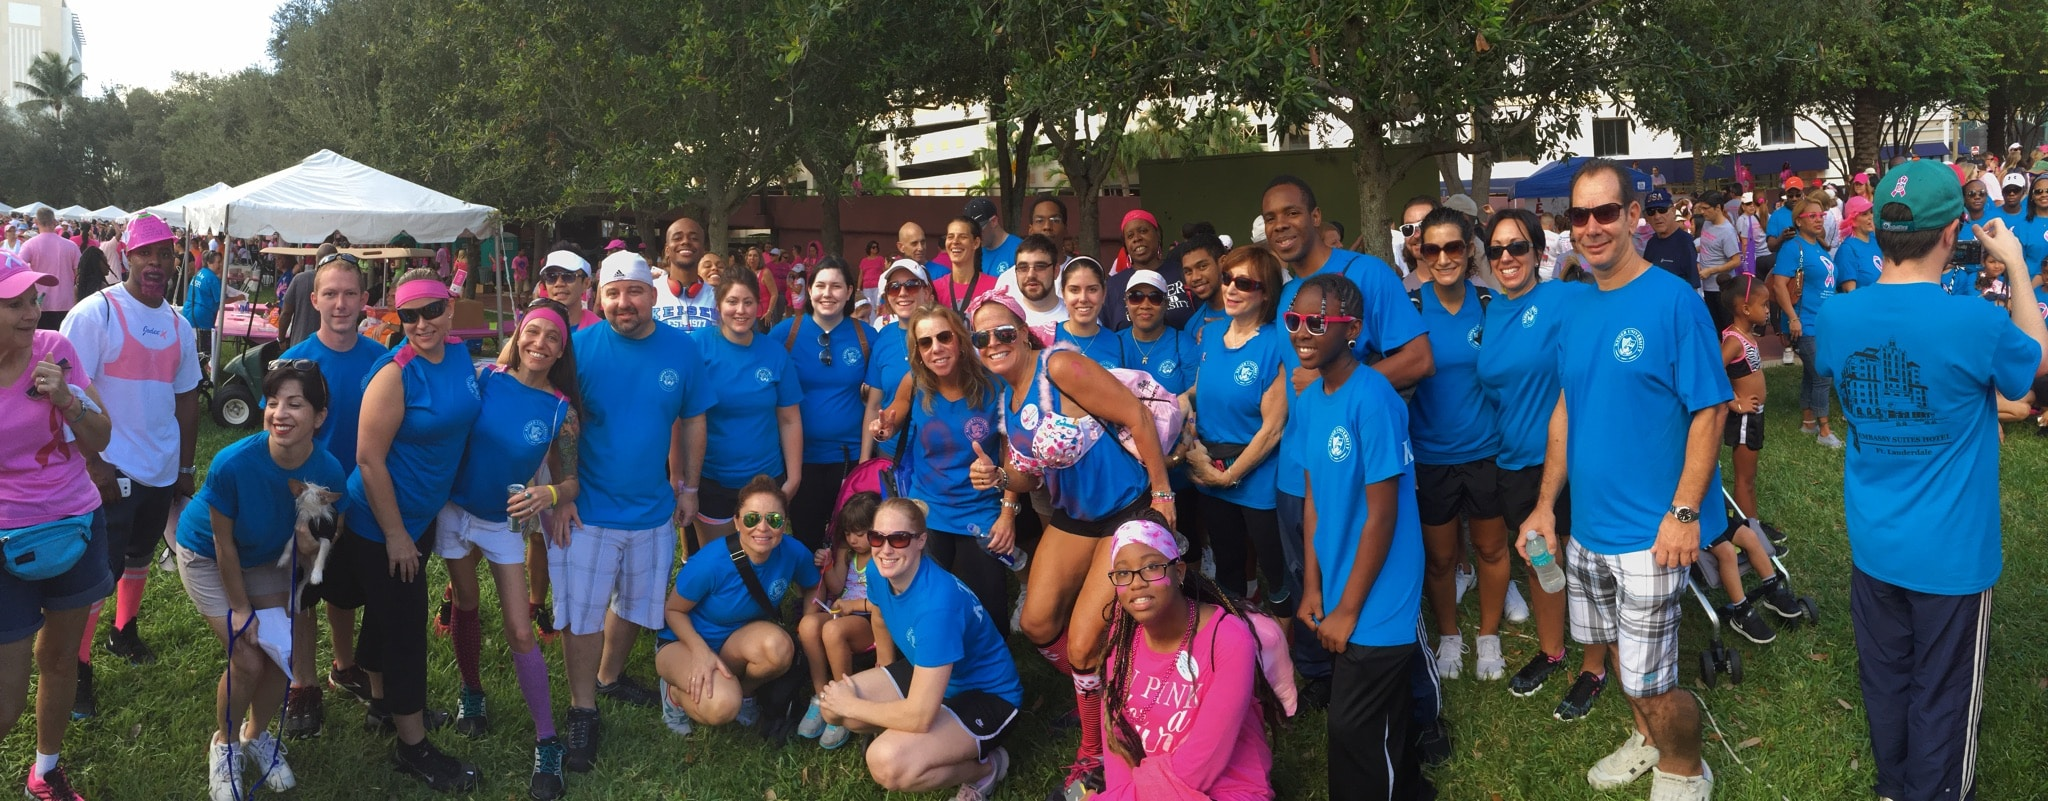 Fort Lauderdale Campus Walk for Breast Cancer Research